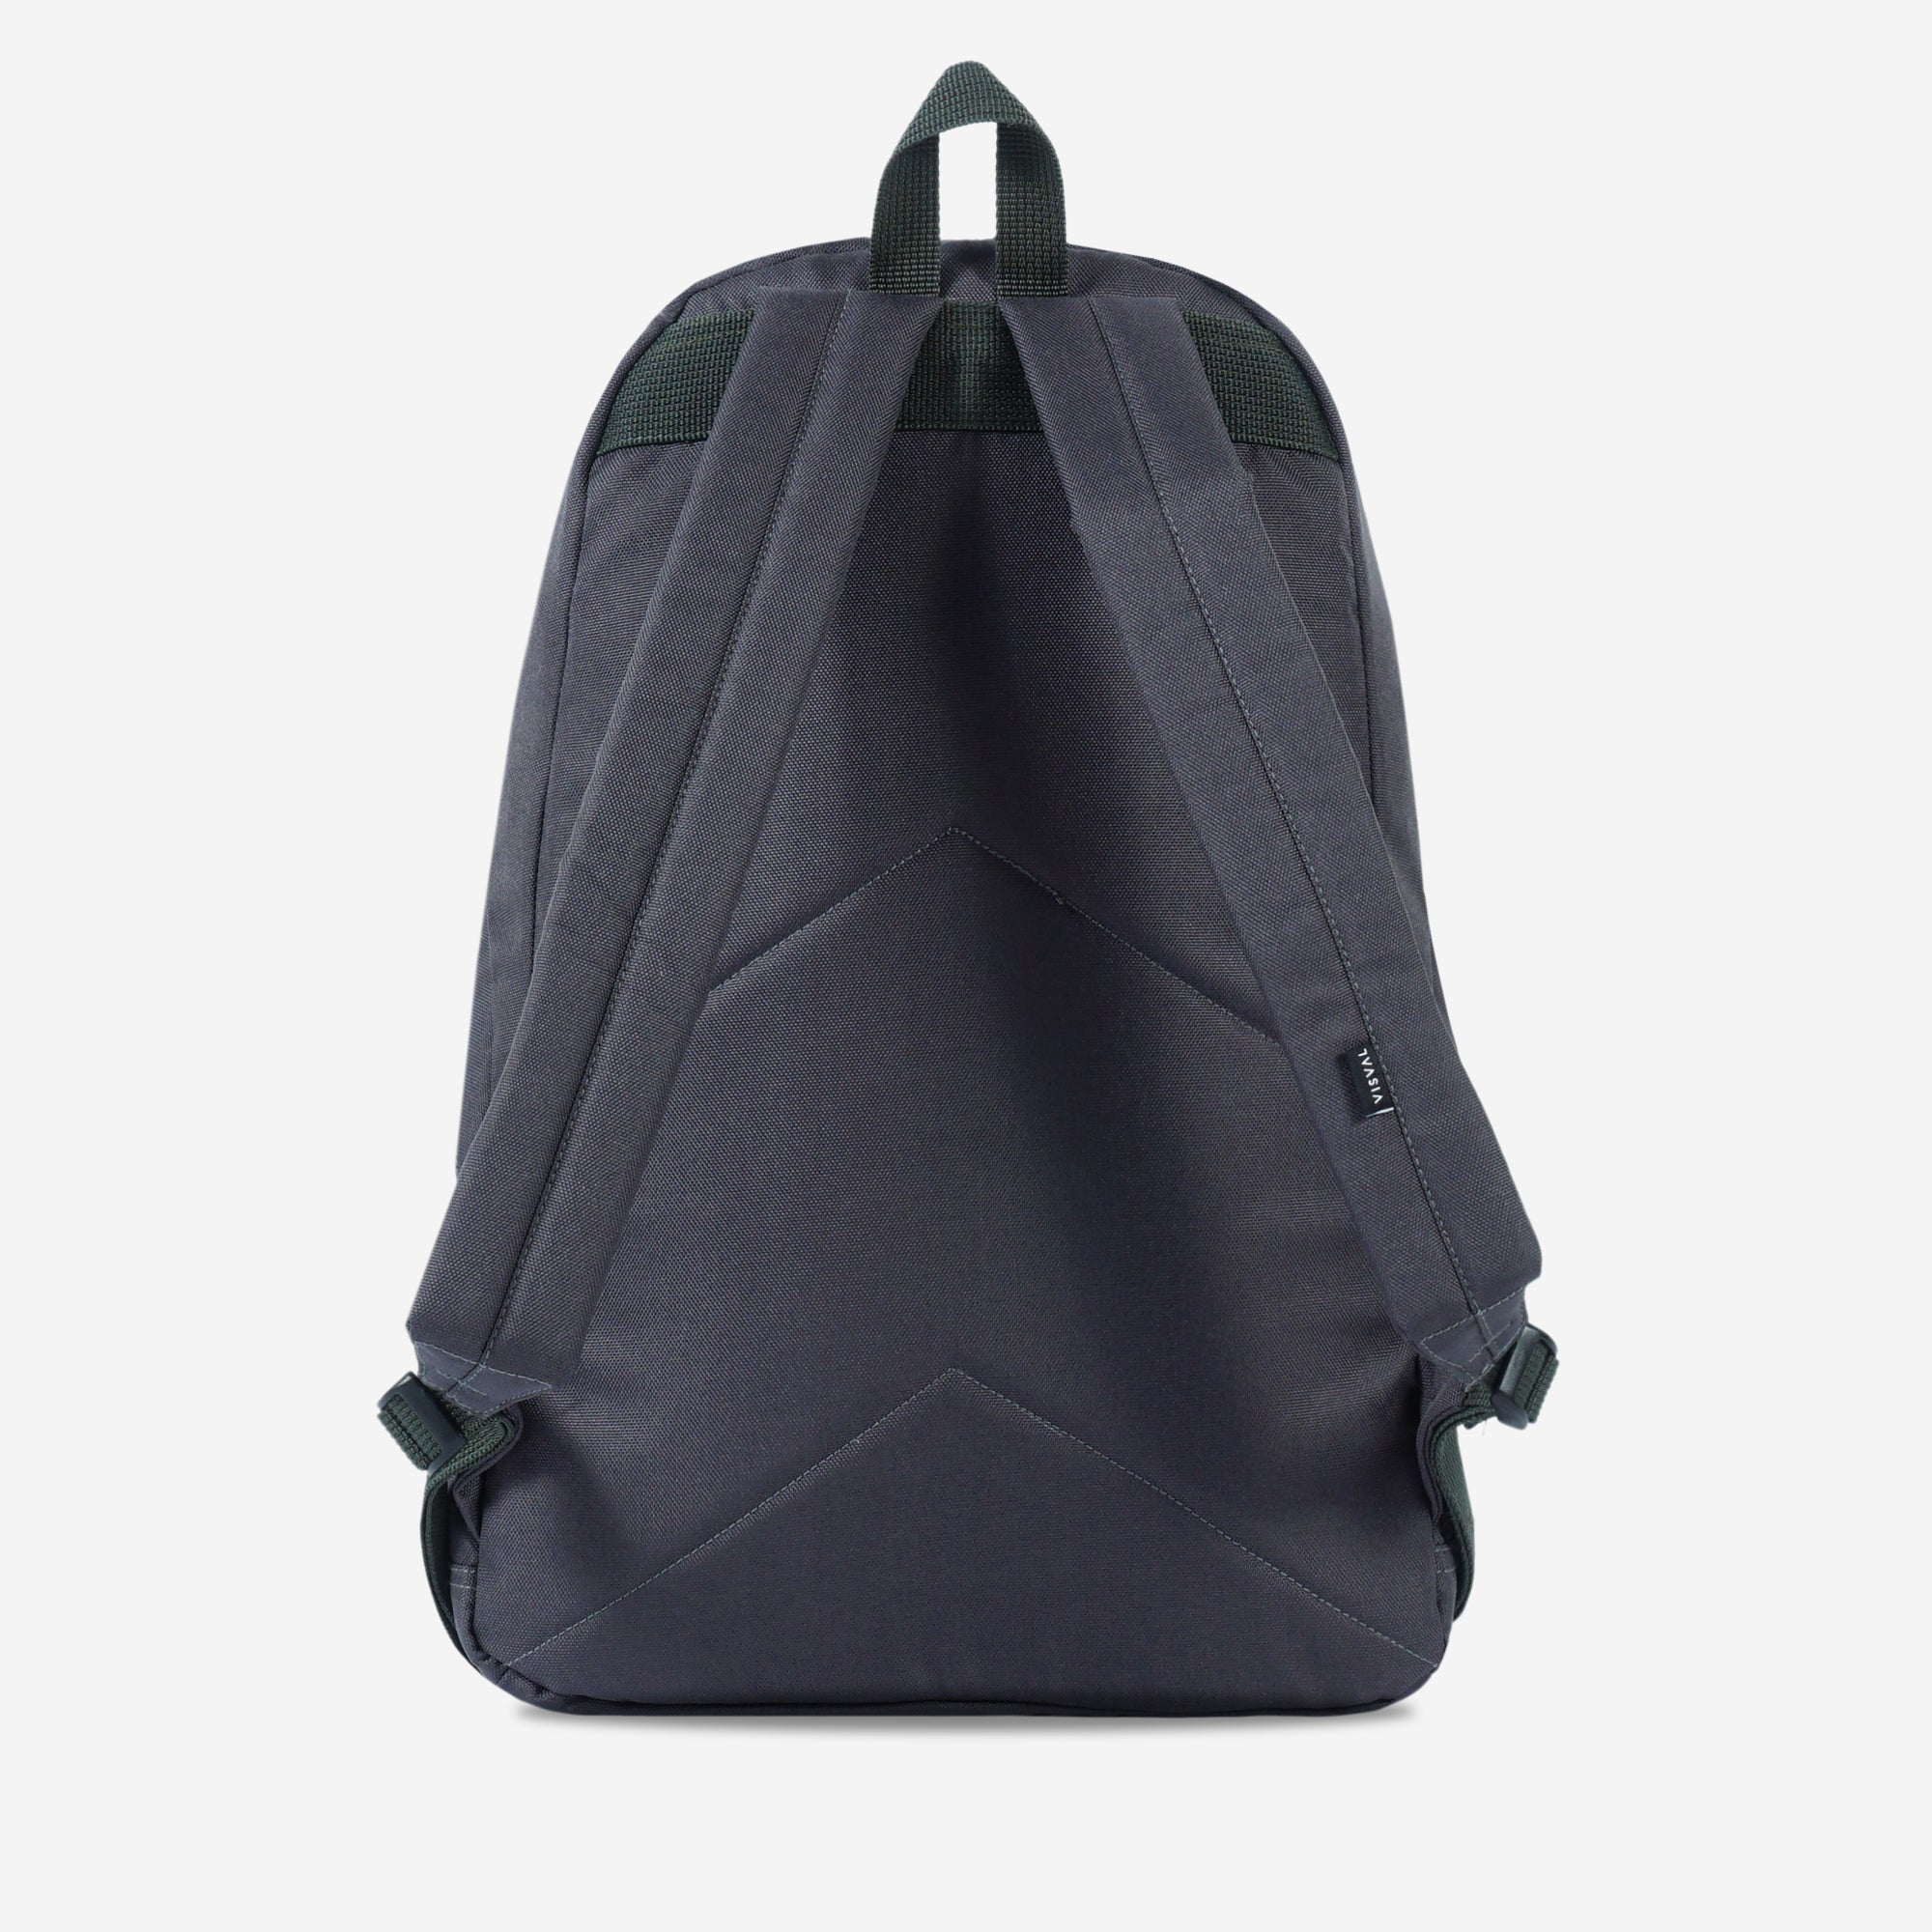 Zema Backpack Grey